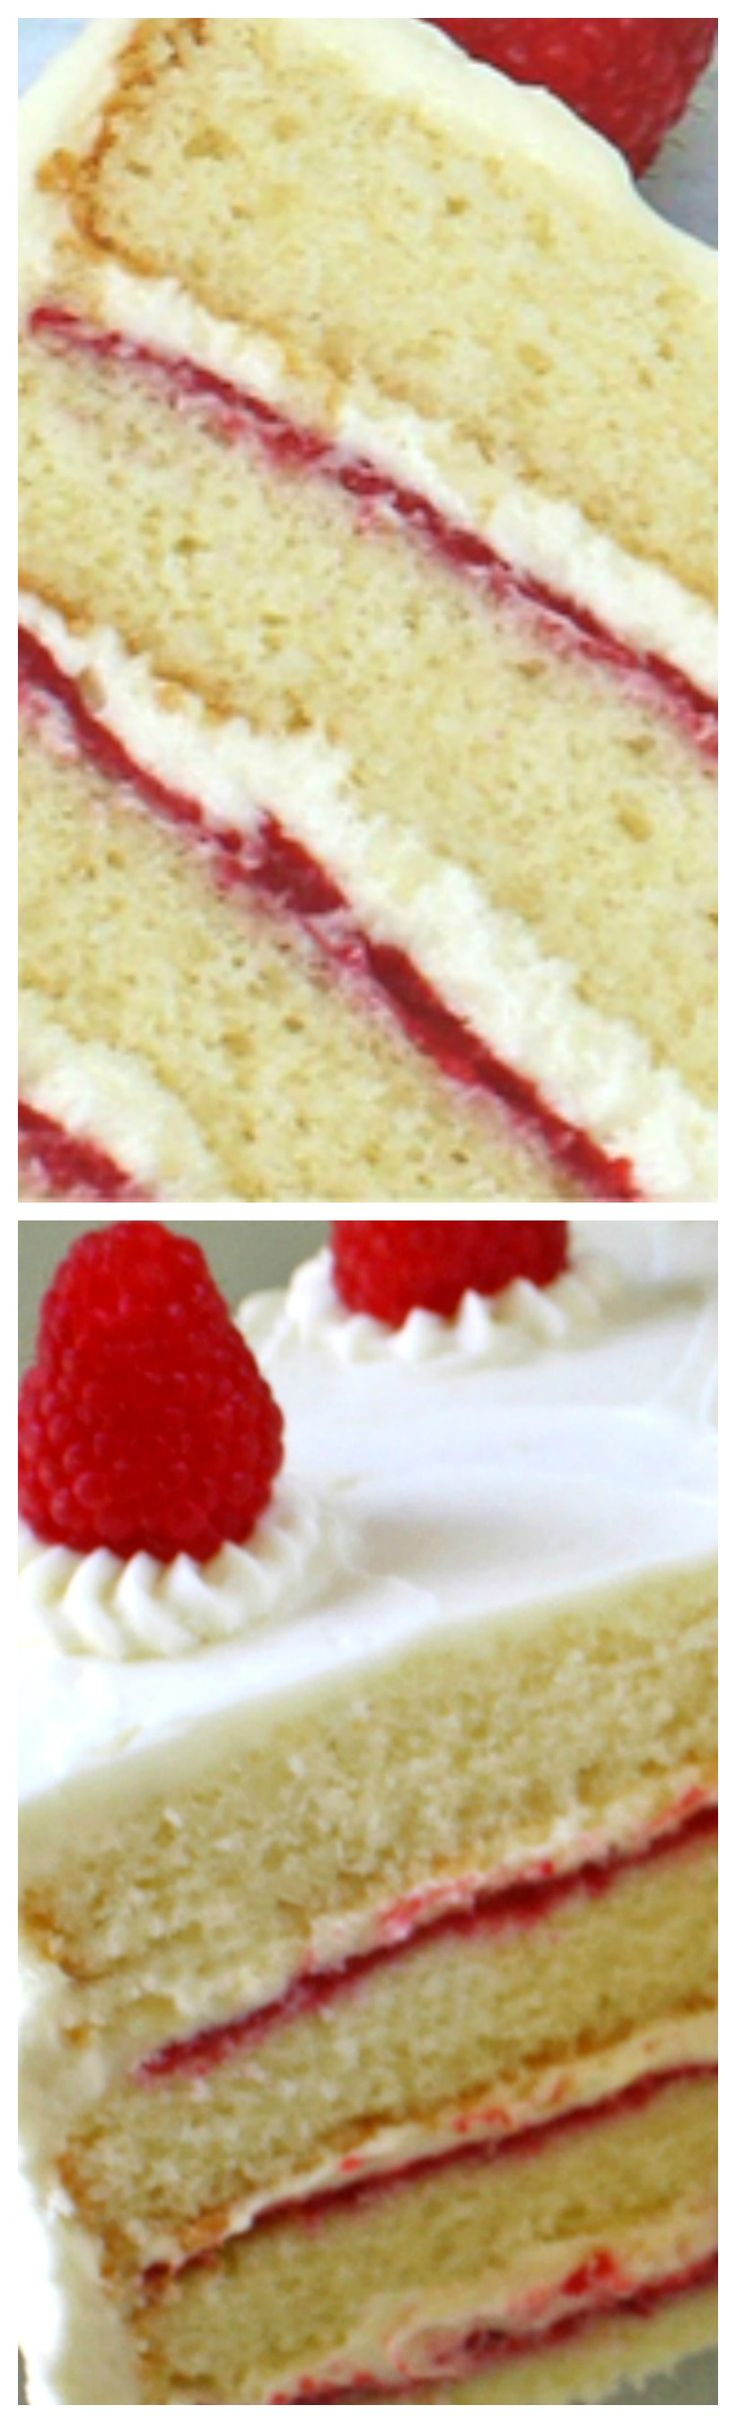 White Chocolate Raspberry Cake ~ White Chocolate and raspberries are a match made in heaven.